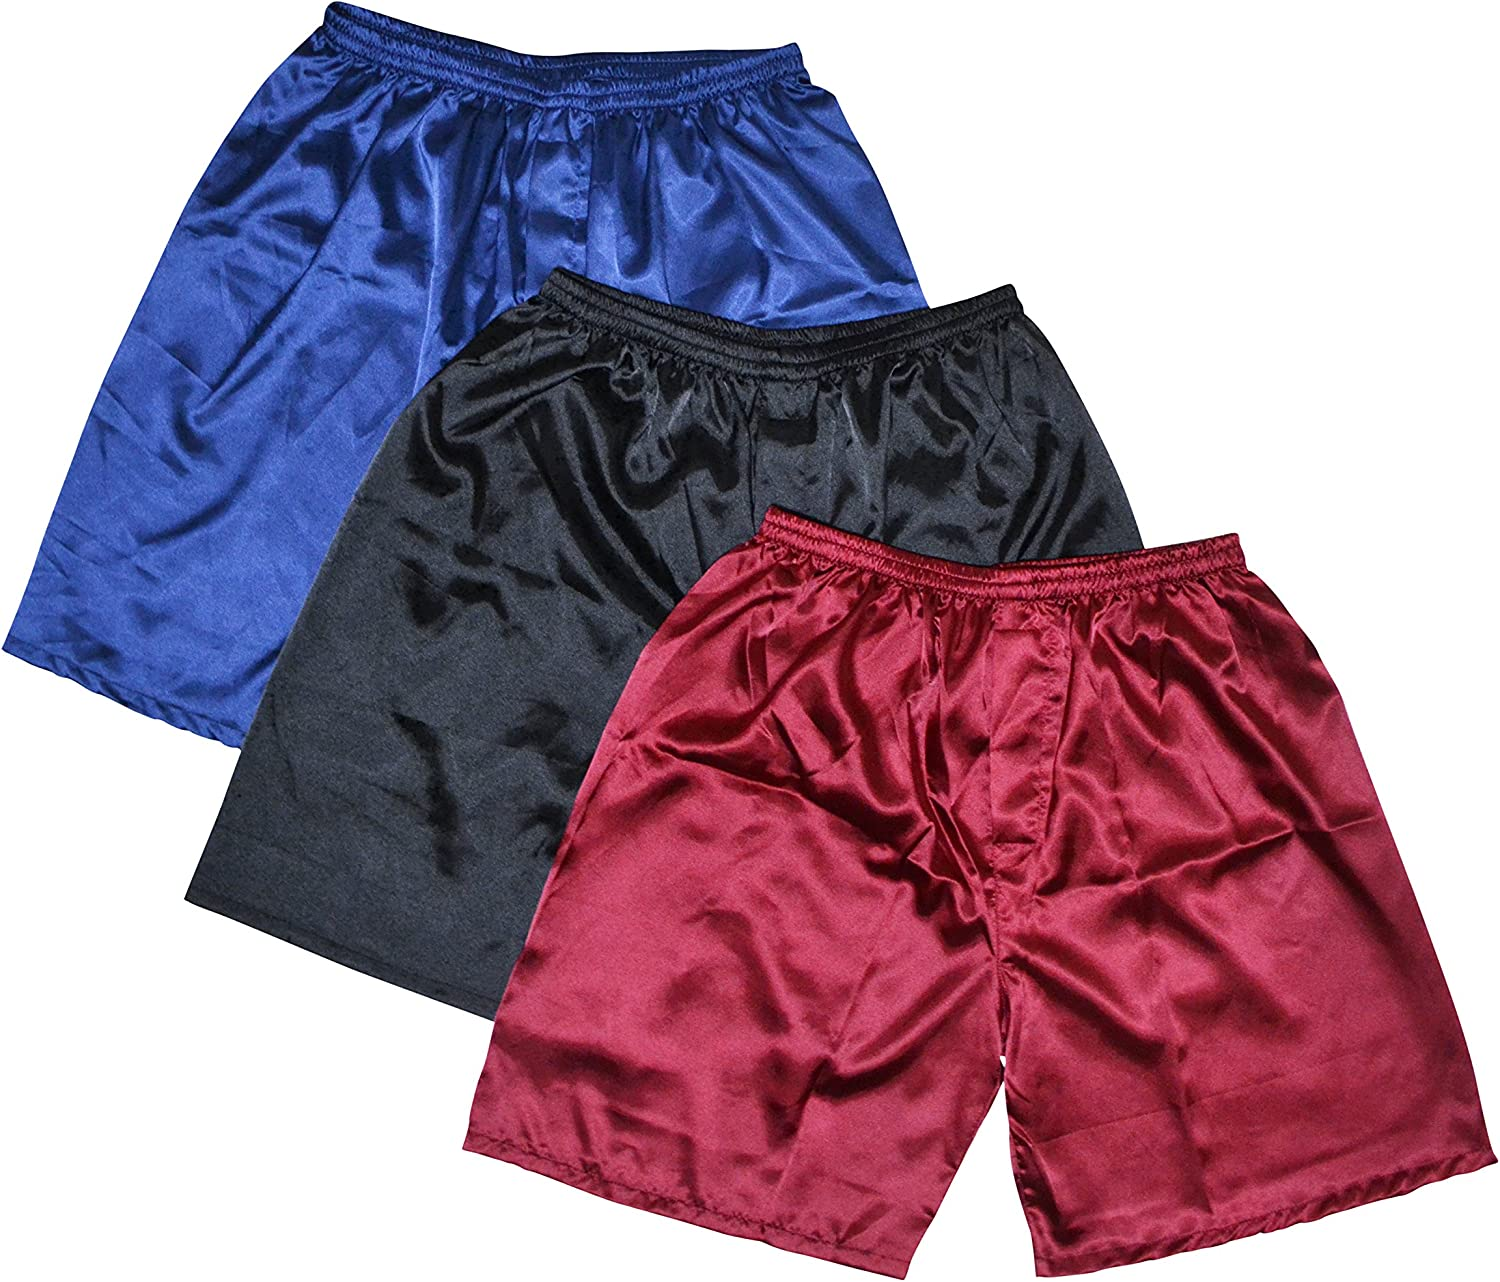 Tony Candice Men's Satin Boxers Shorts High order Underwear New Orleans Mall Pack Combo